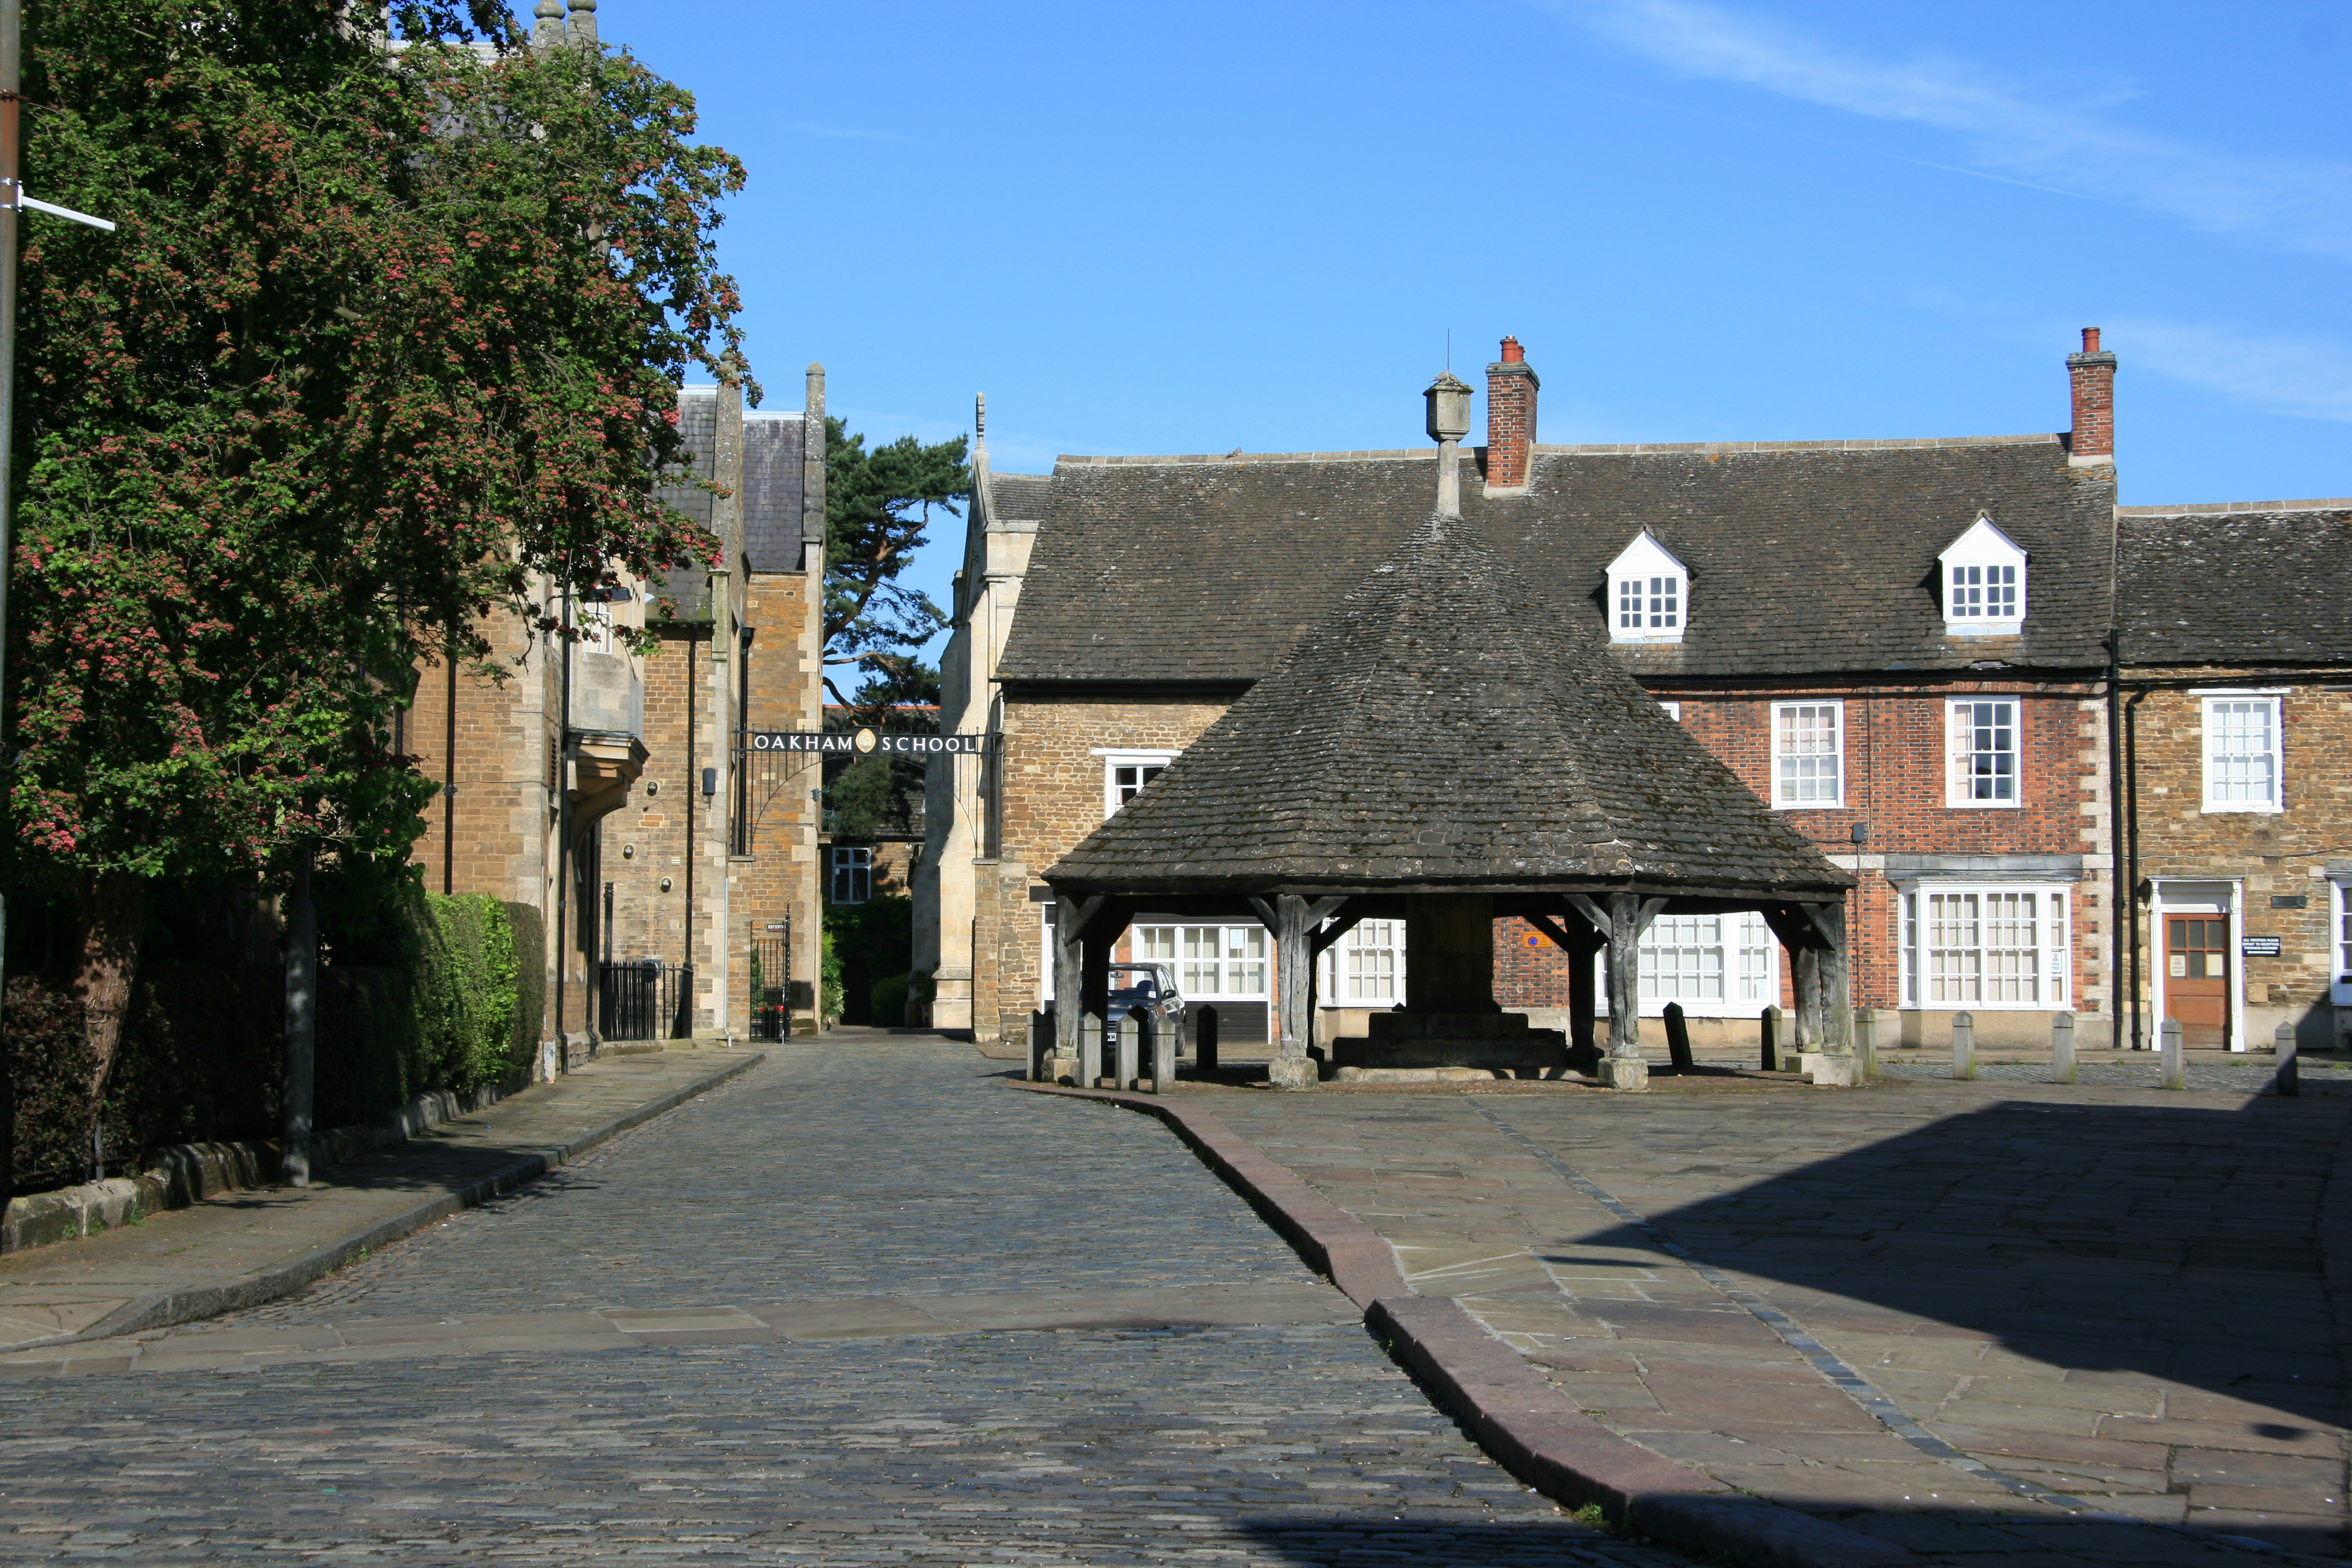 Chapel Close entrance to Oakham School, The Buttercross